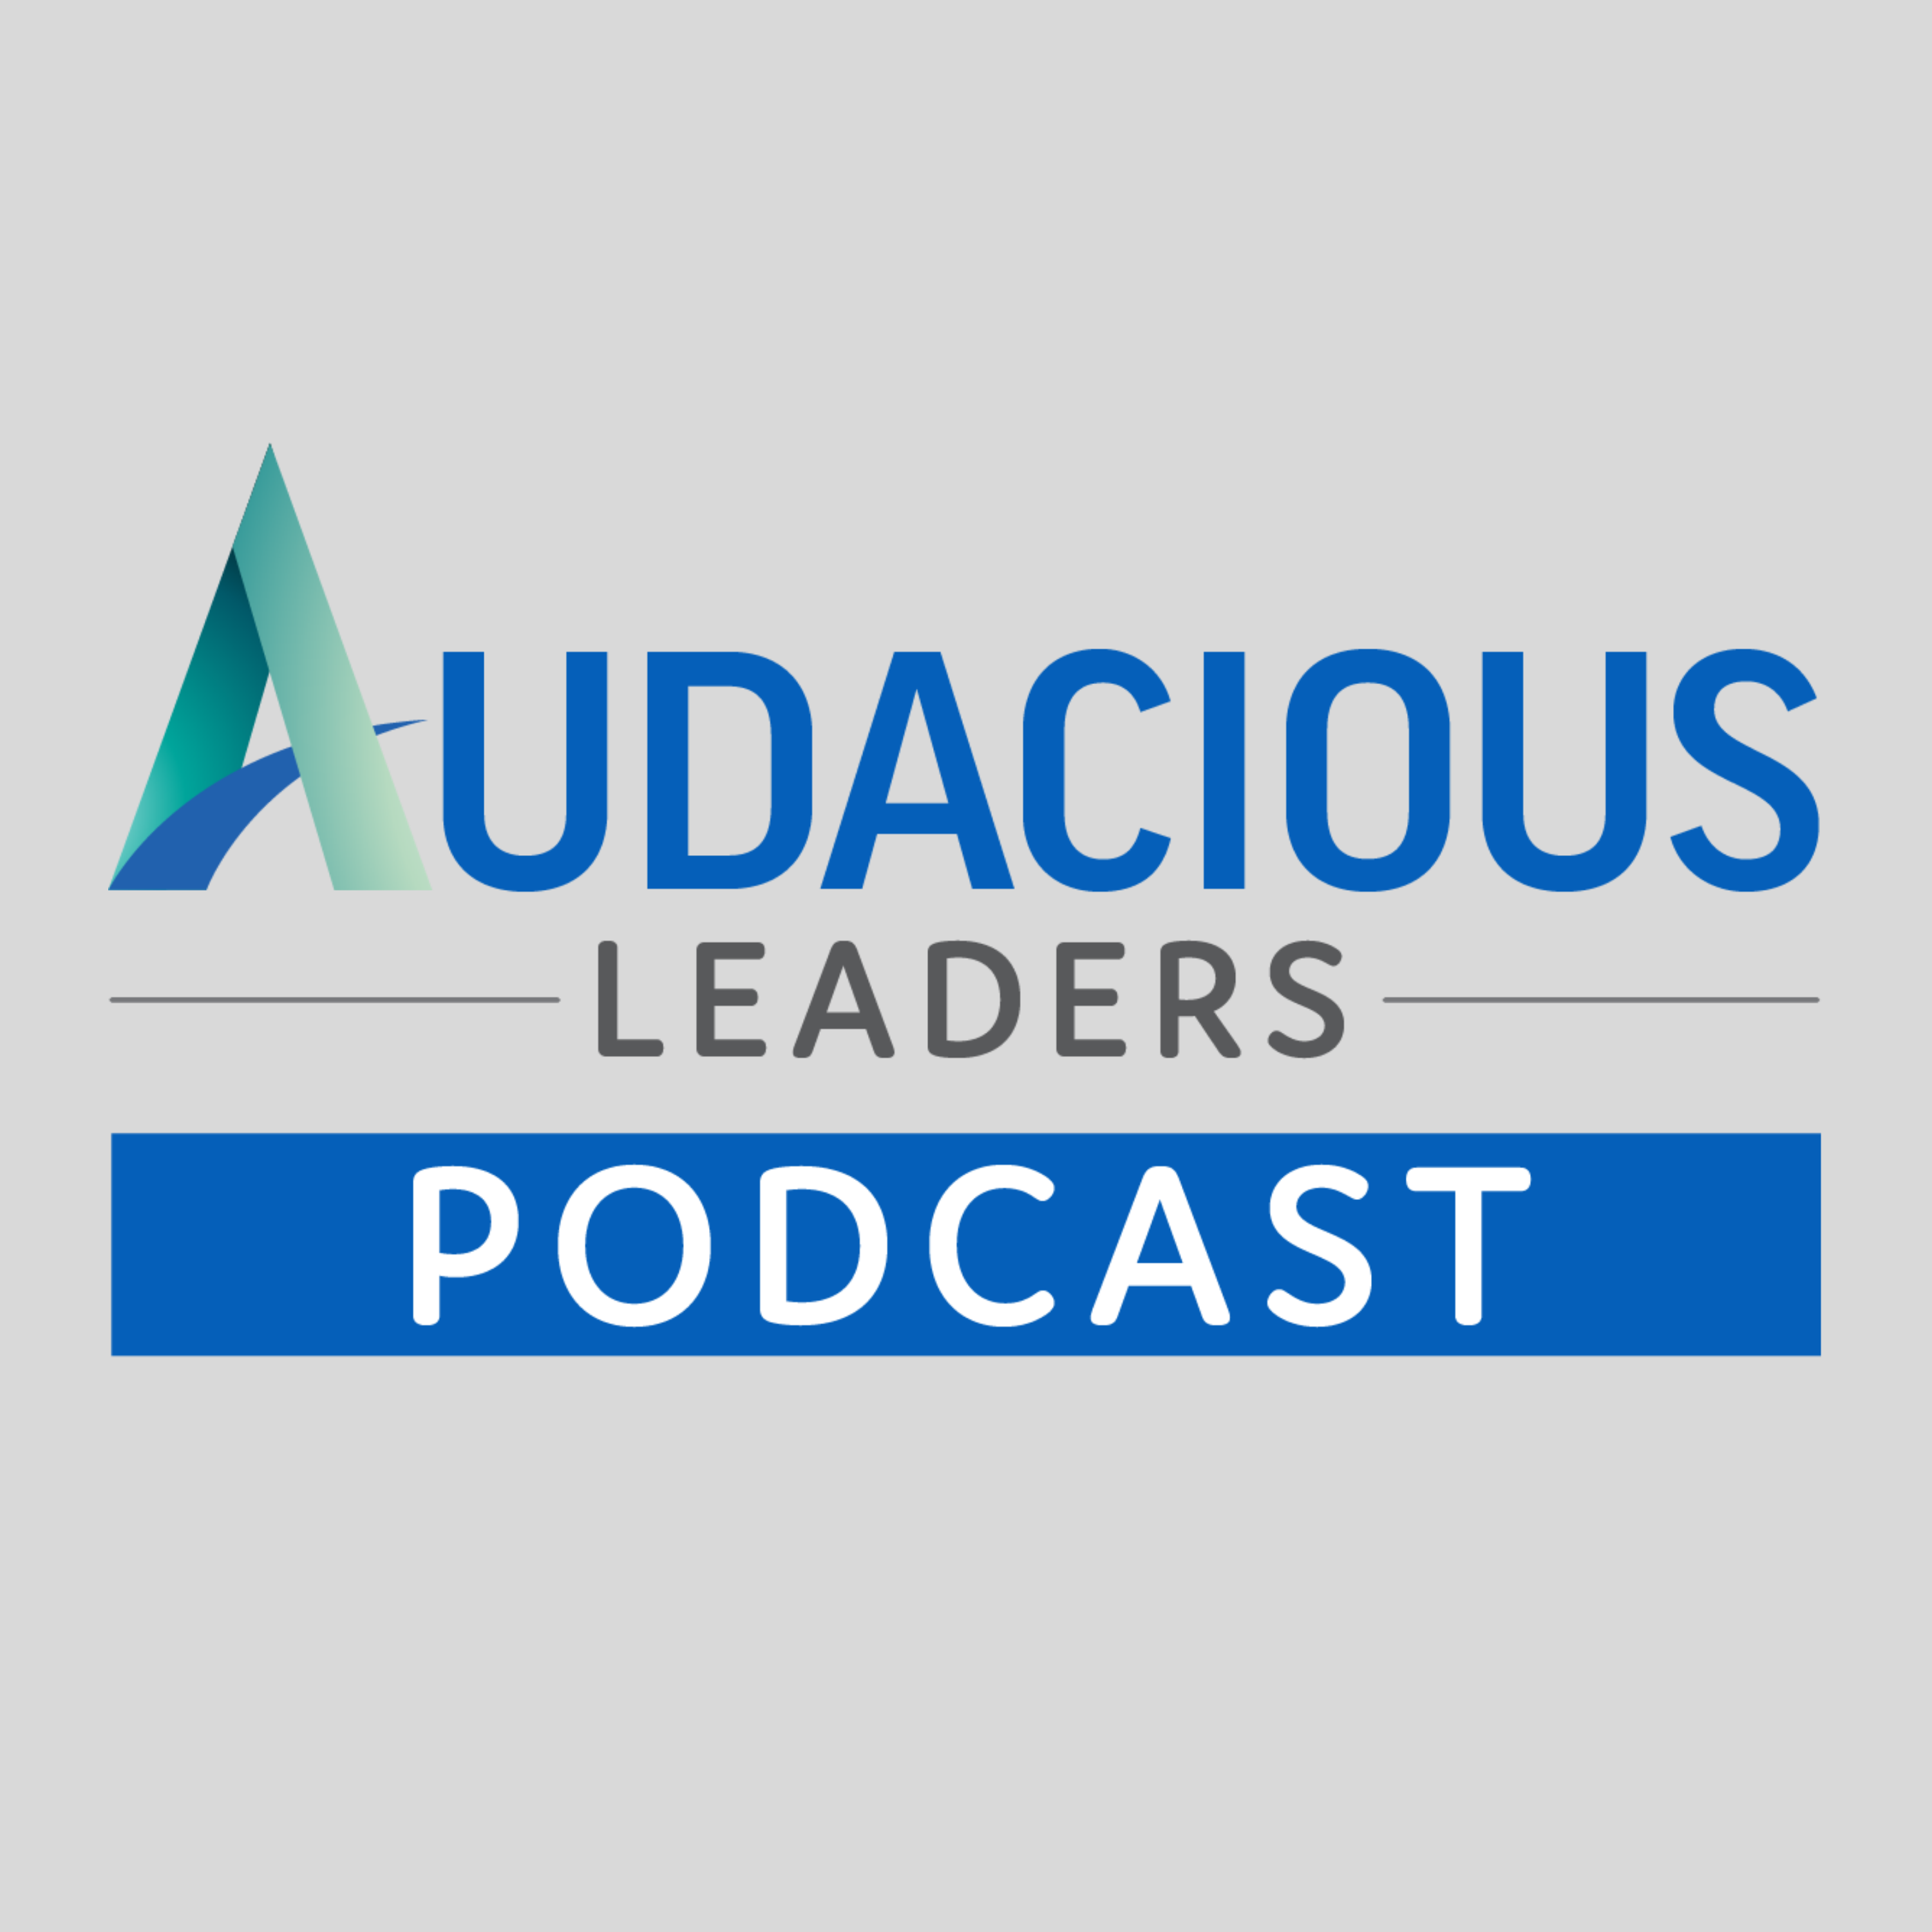 Audacious Leaders Podcast show art